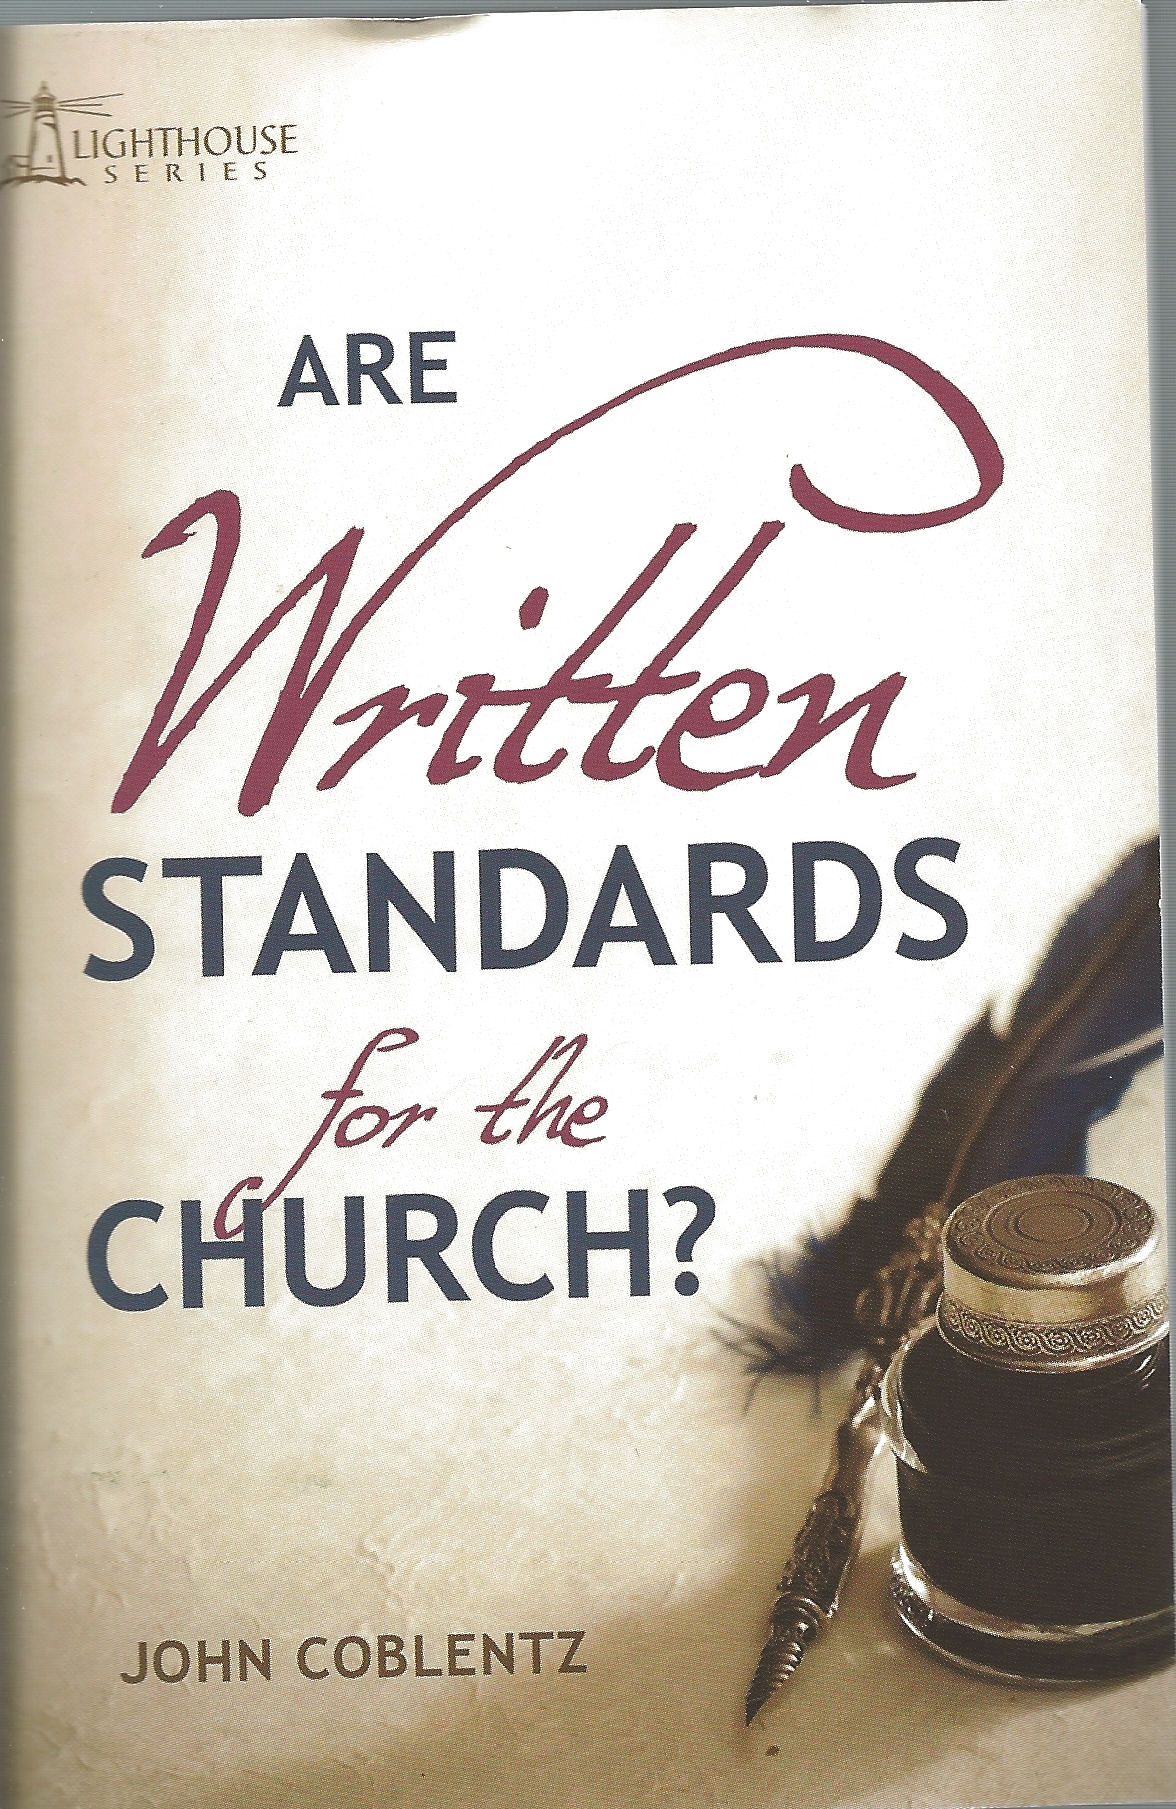 ARE WRITTEN STANDARDS FOR THE CHURCH? John Coblentz